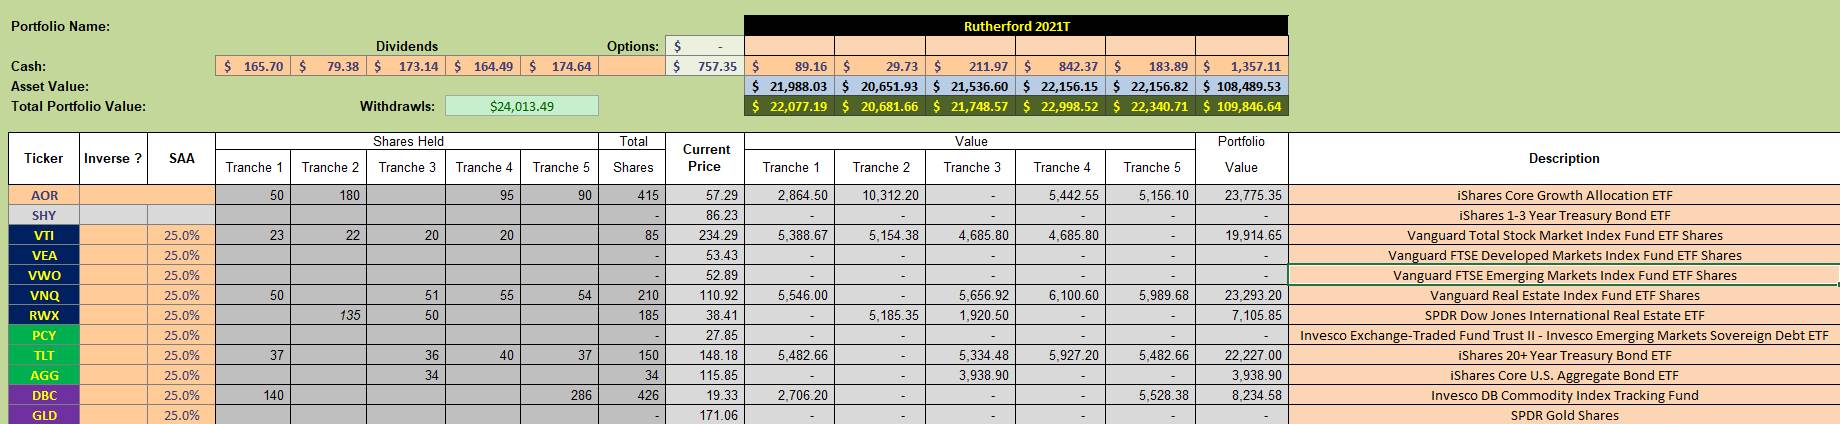 Rutherford Portfolio Review (Tranche 5) – 3 September 2021 4